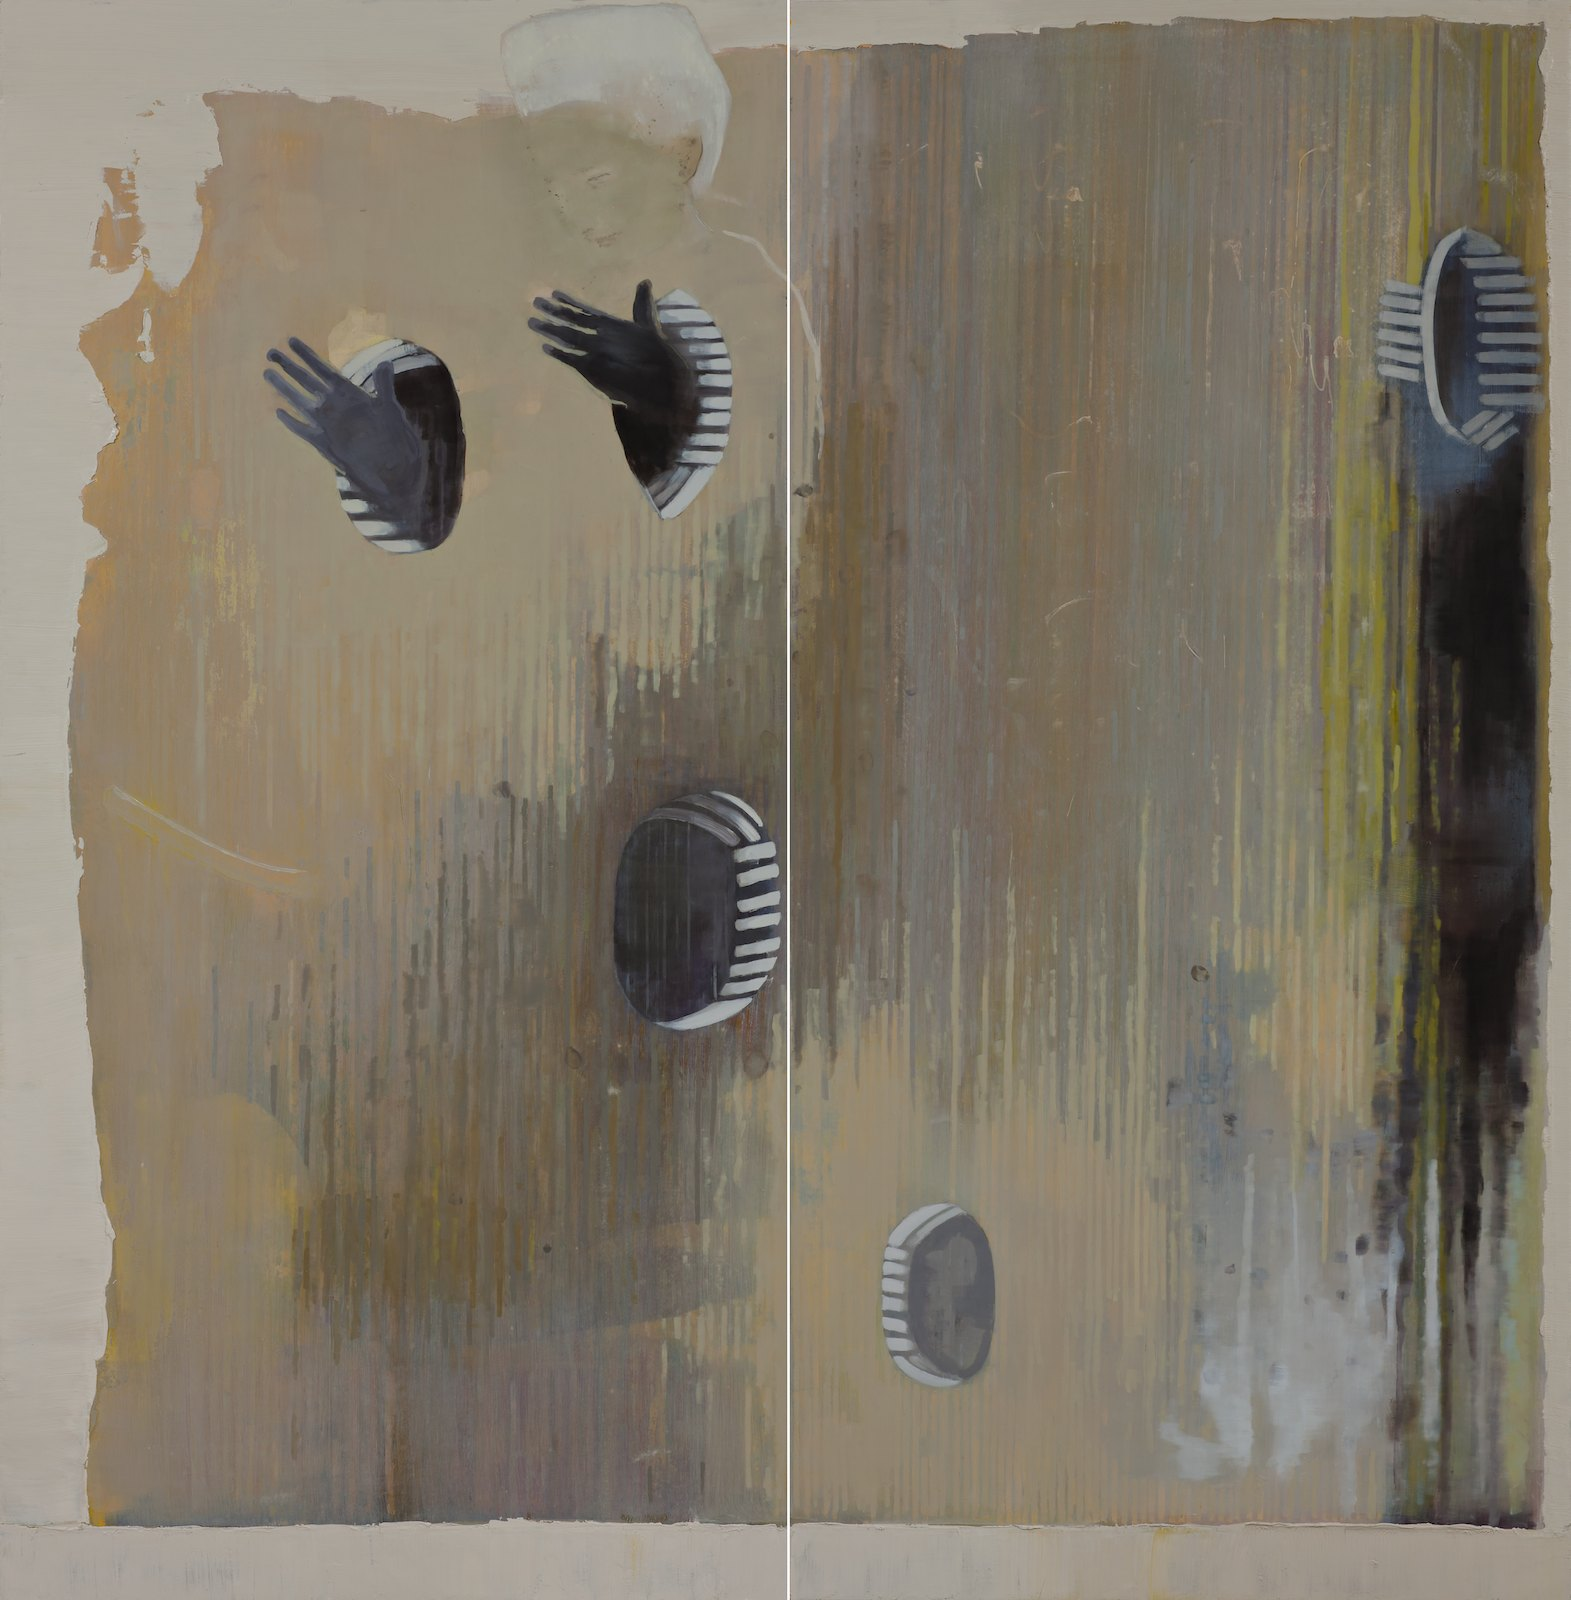 The Touch Evolves its Twin, 2012, oil on canvas over panel, 198,5 x 193,5 (2 parts)